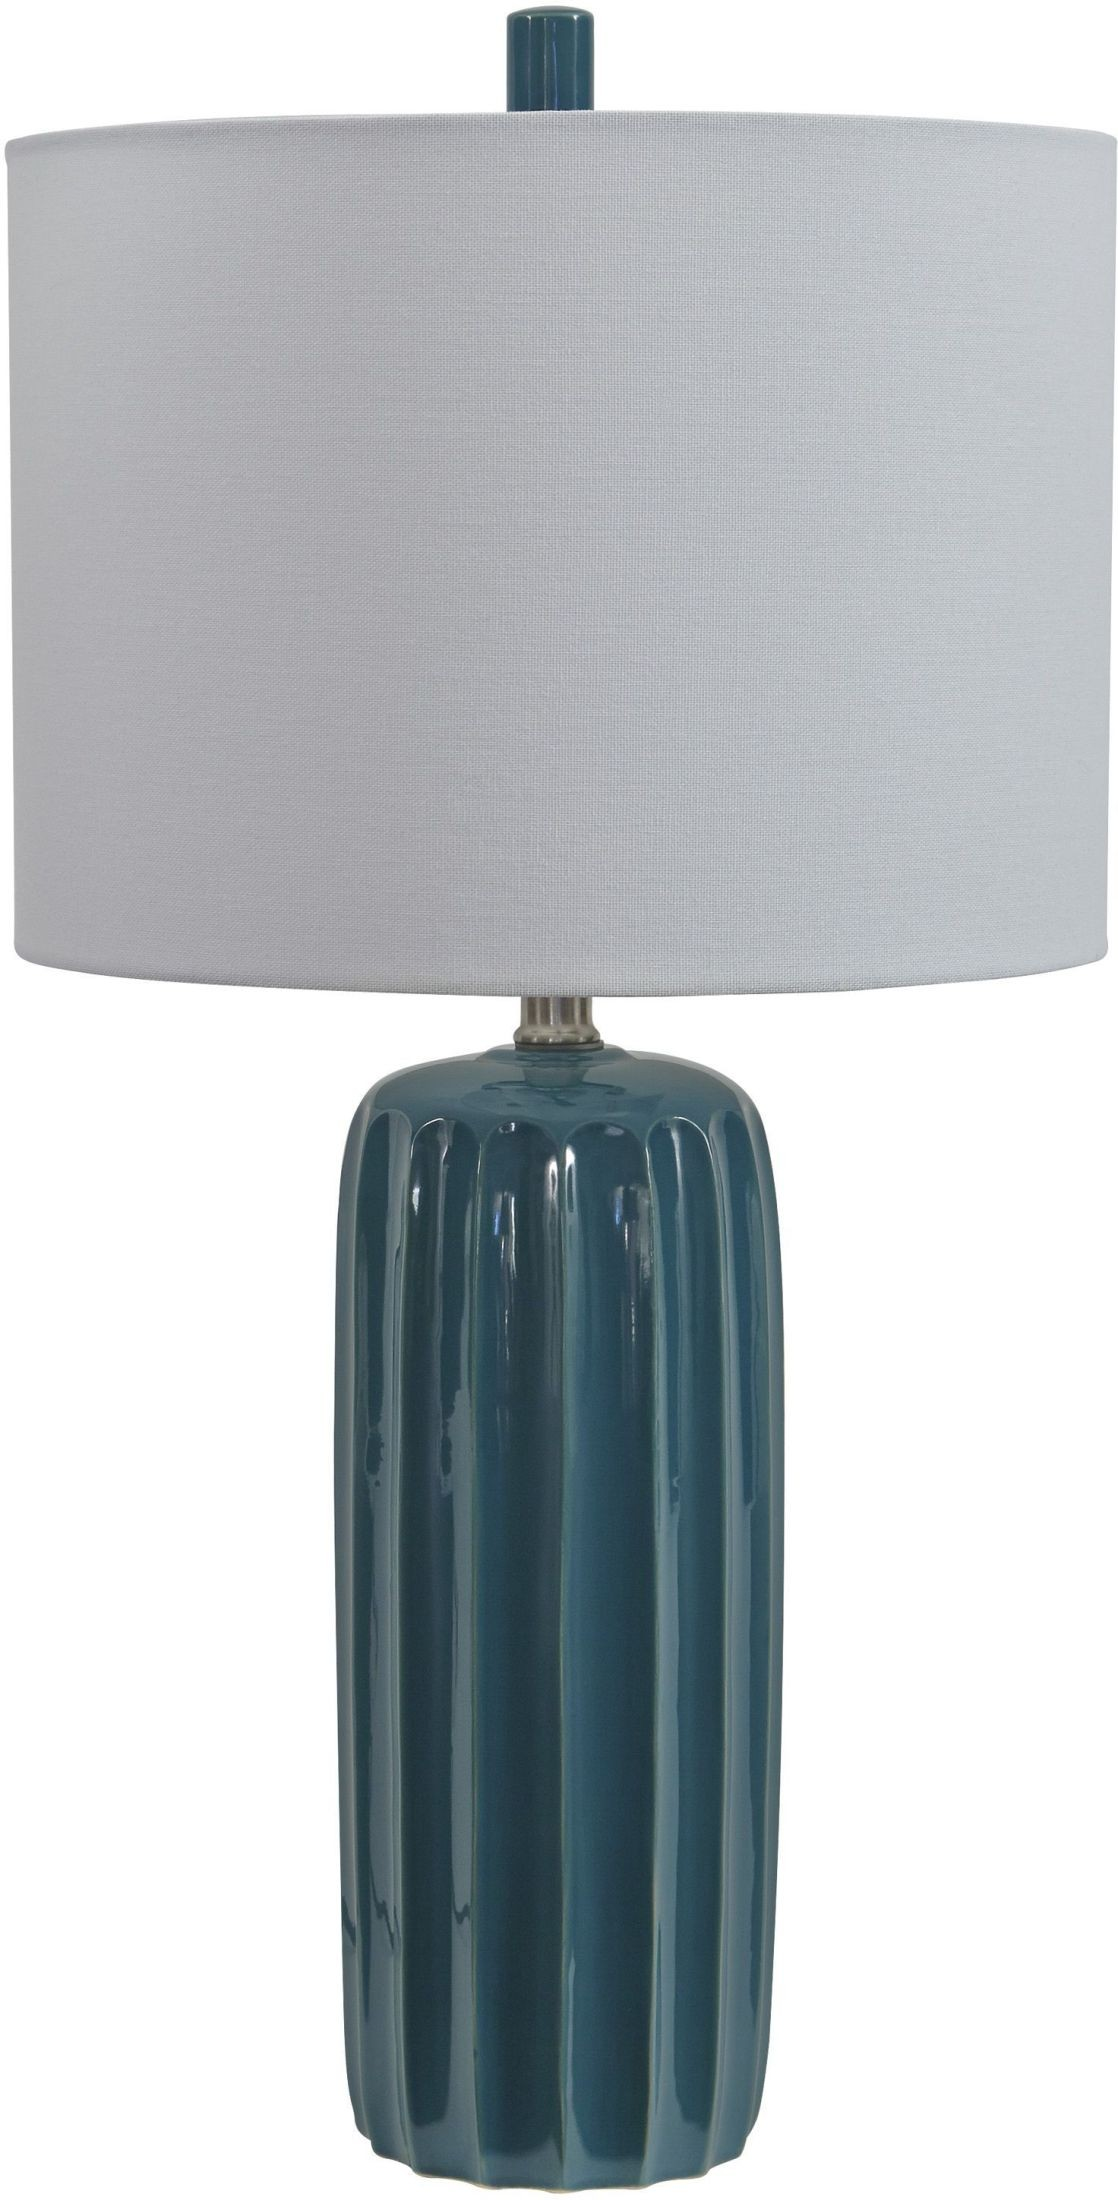 Adorlee Teal Ceramic Table Lamp from Ashley